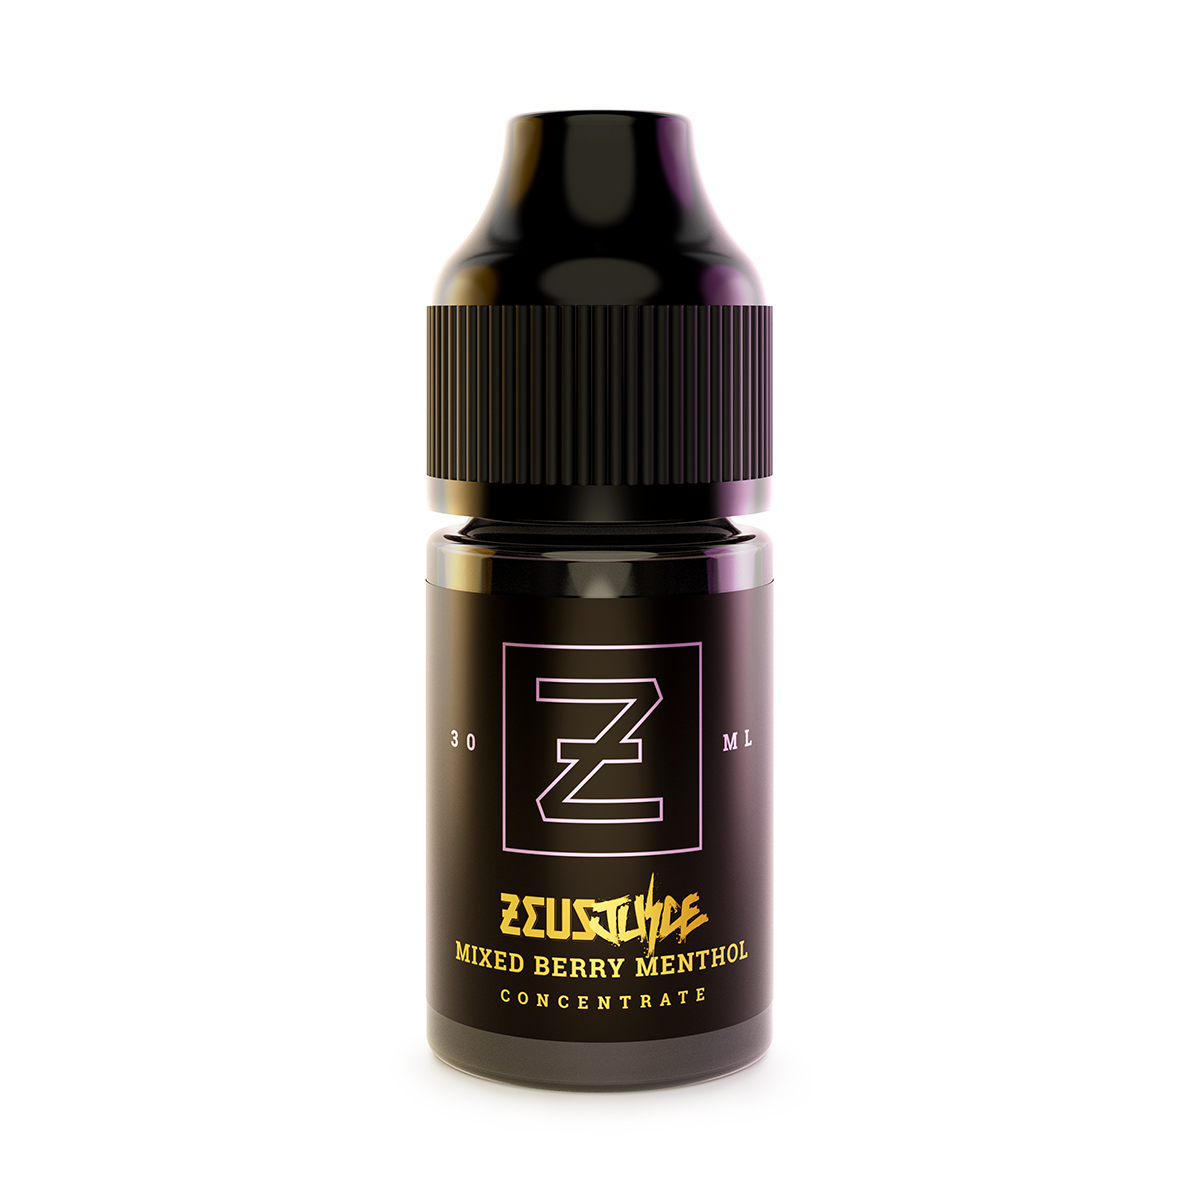 Mixed Berry Menthol Flavour Concentrate by Zeus Juice